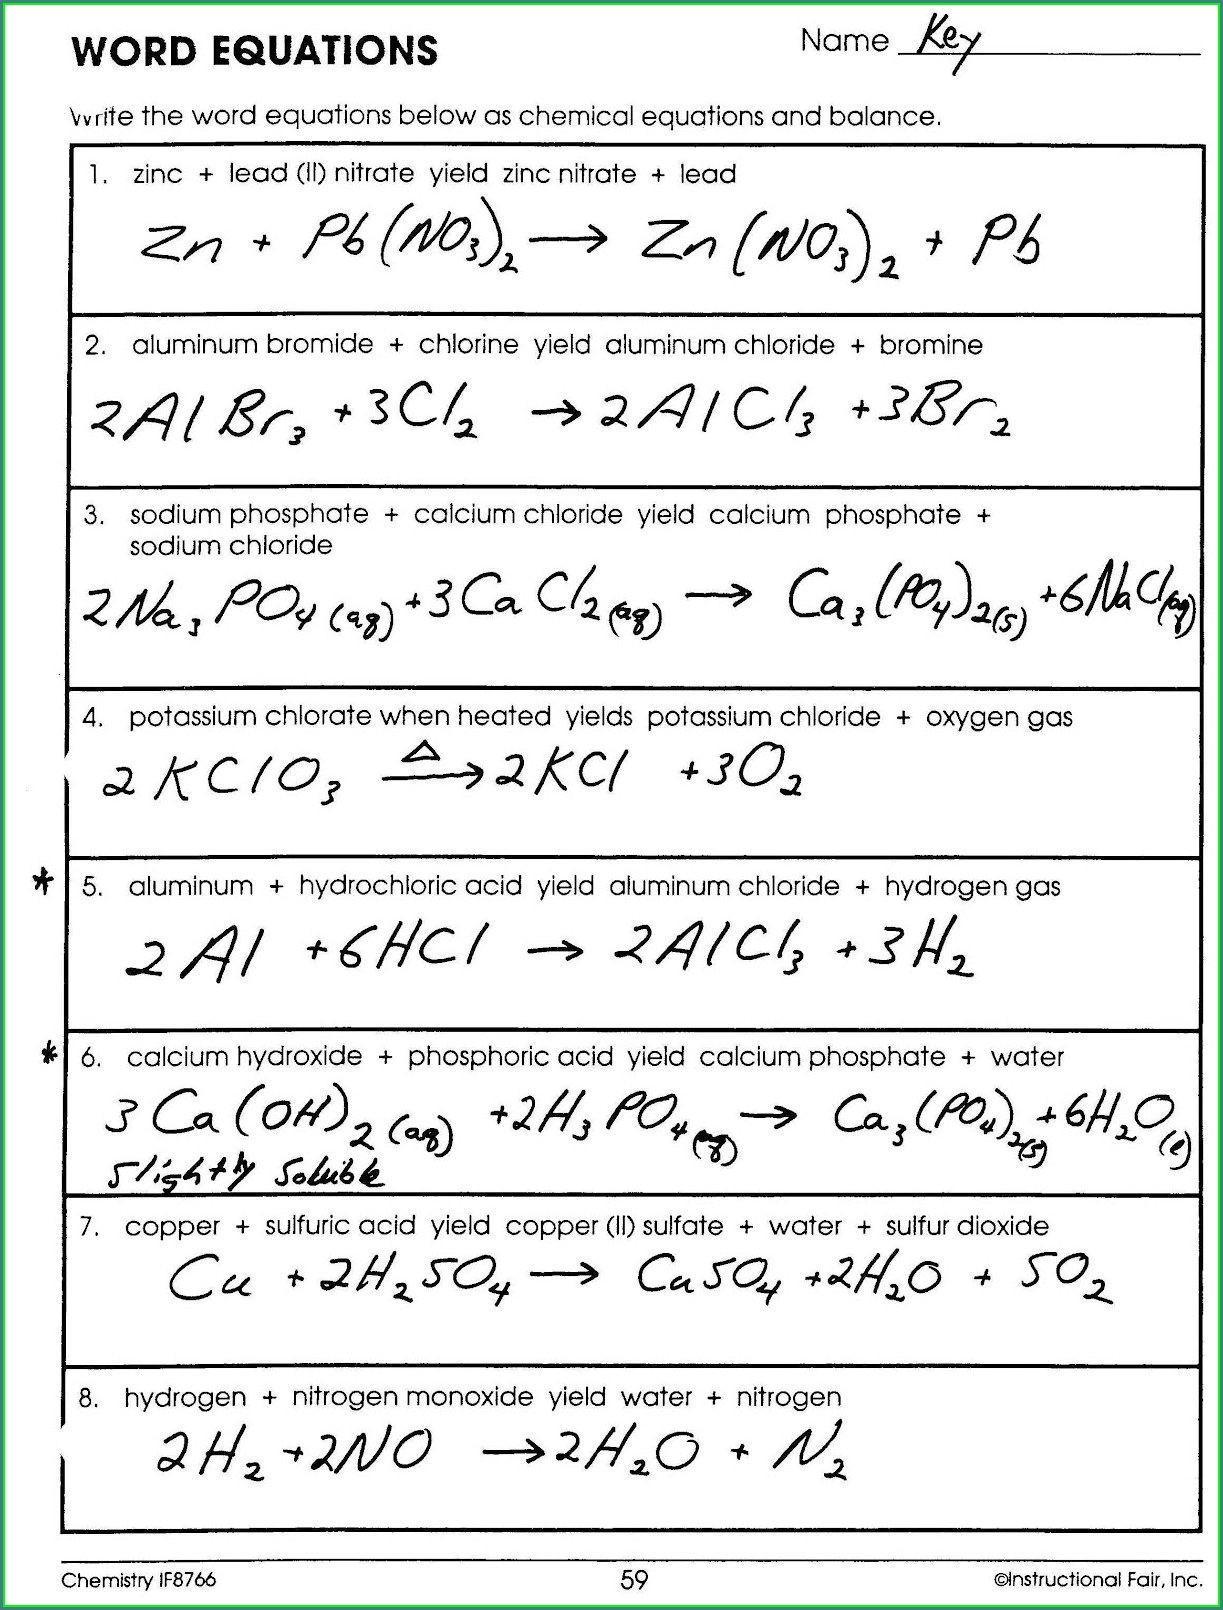 Converting Word Equations Into Chemical Equations Worksheet